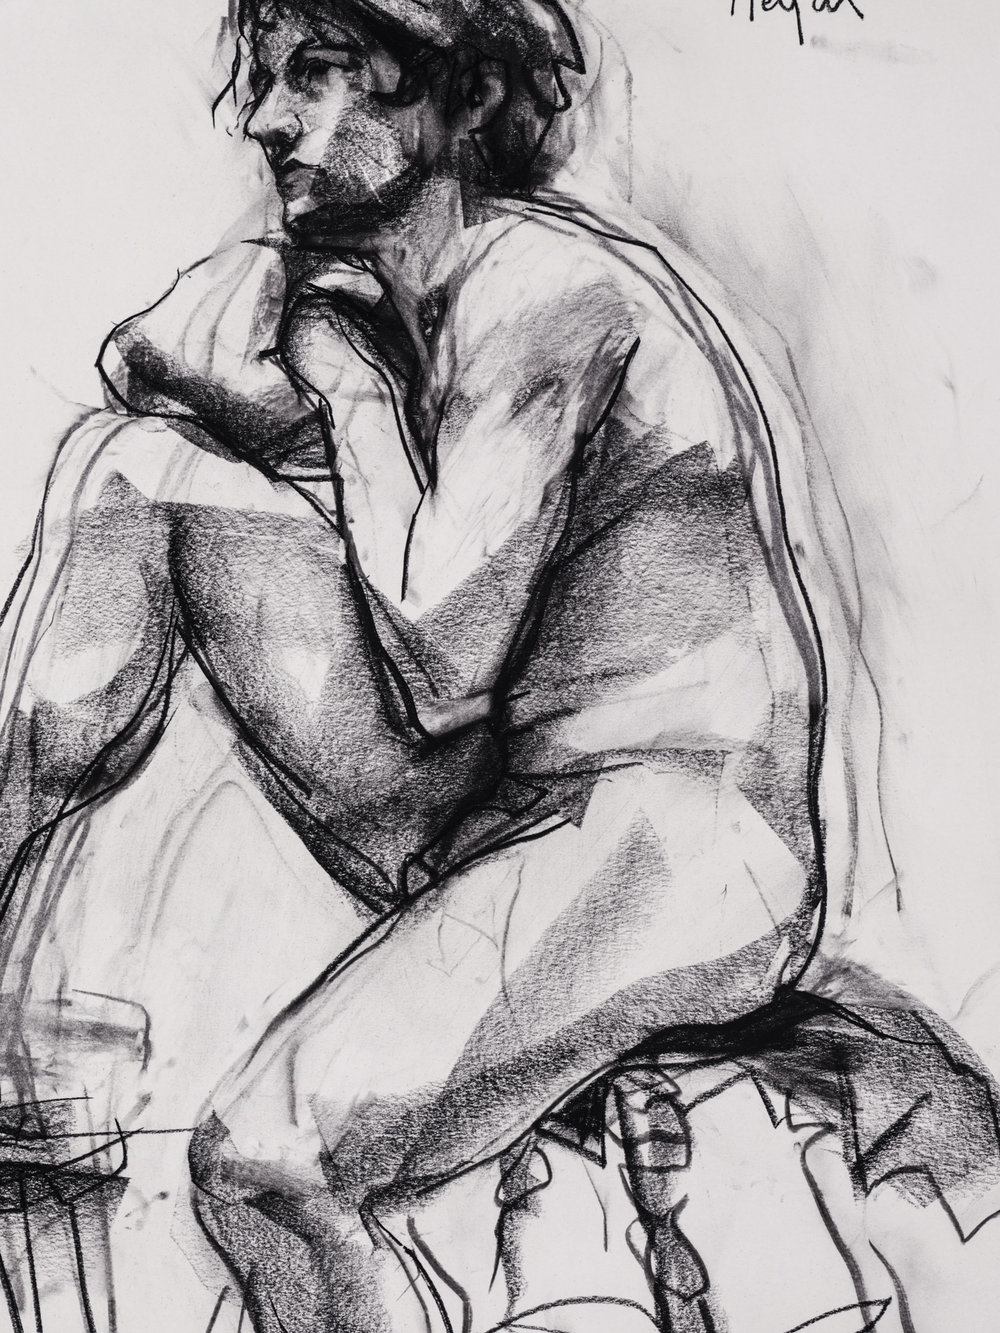 FigureDrawing-wHEYDT-23.jpg